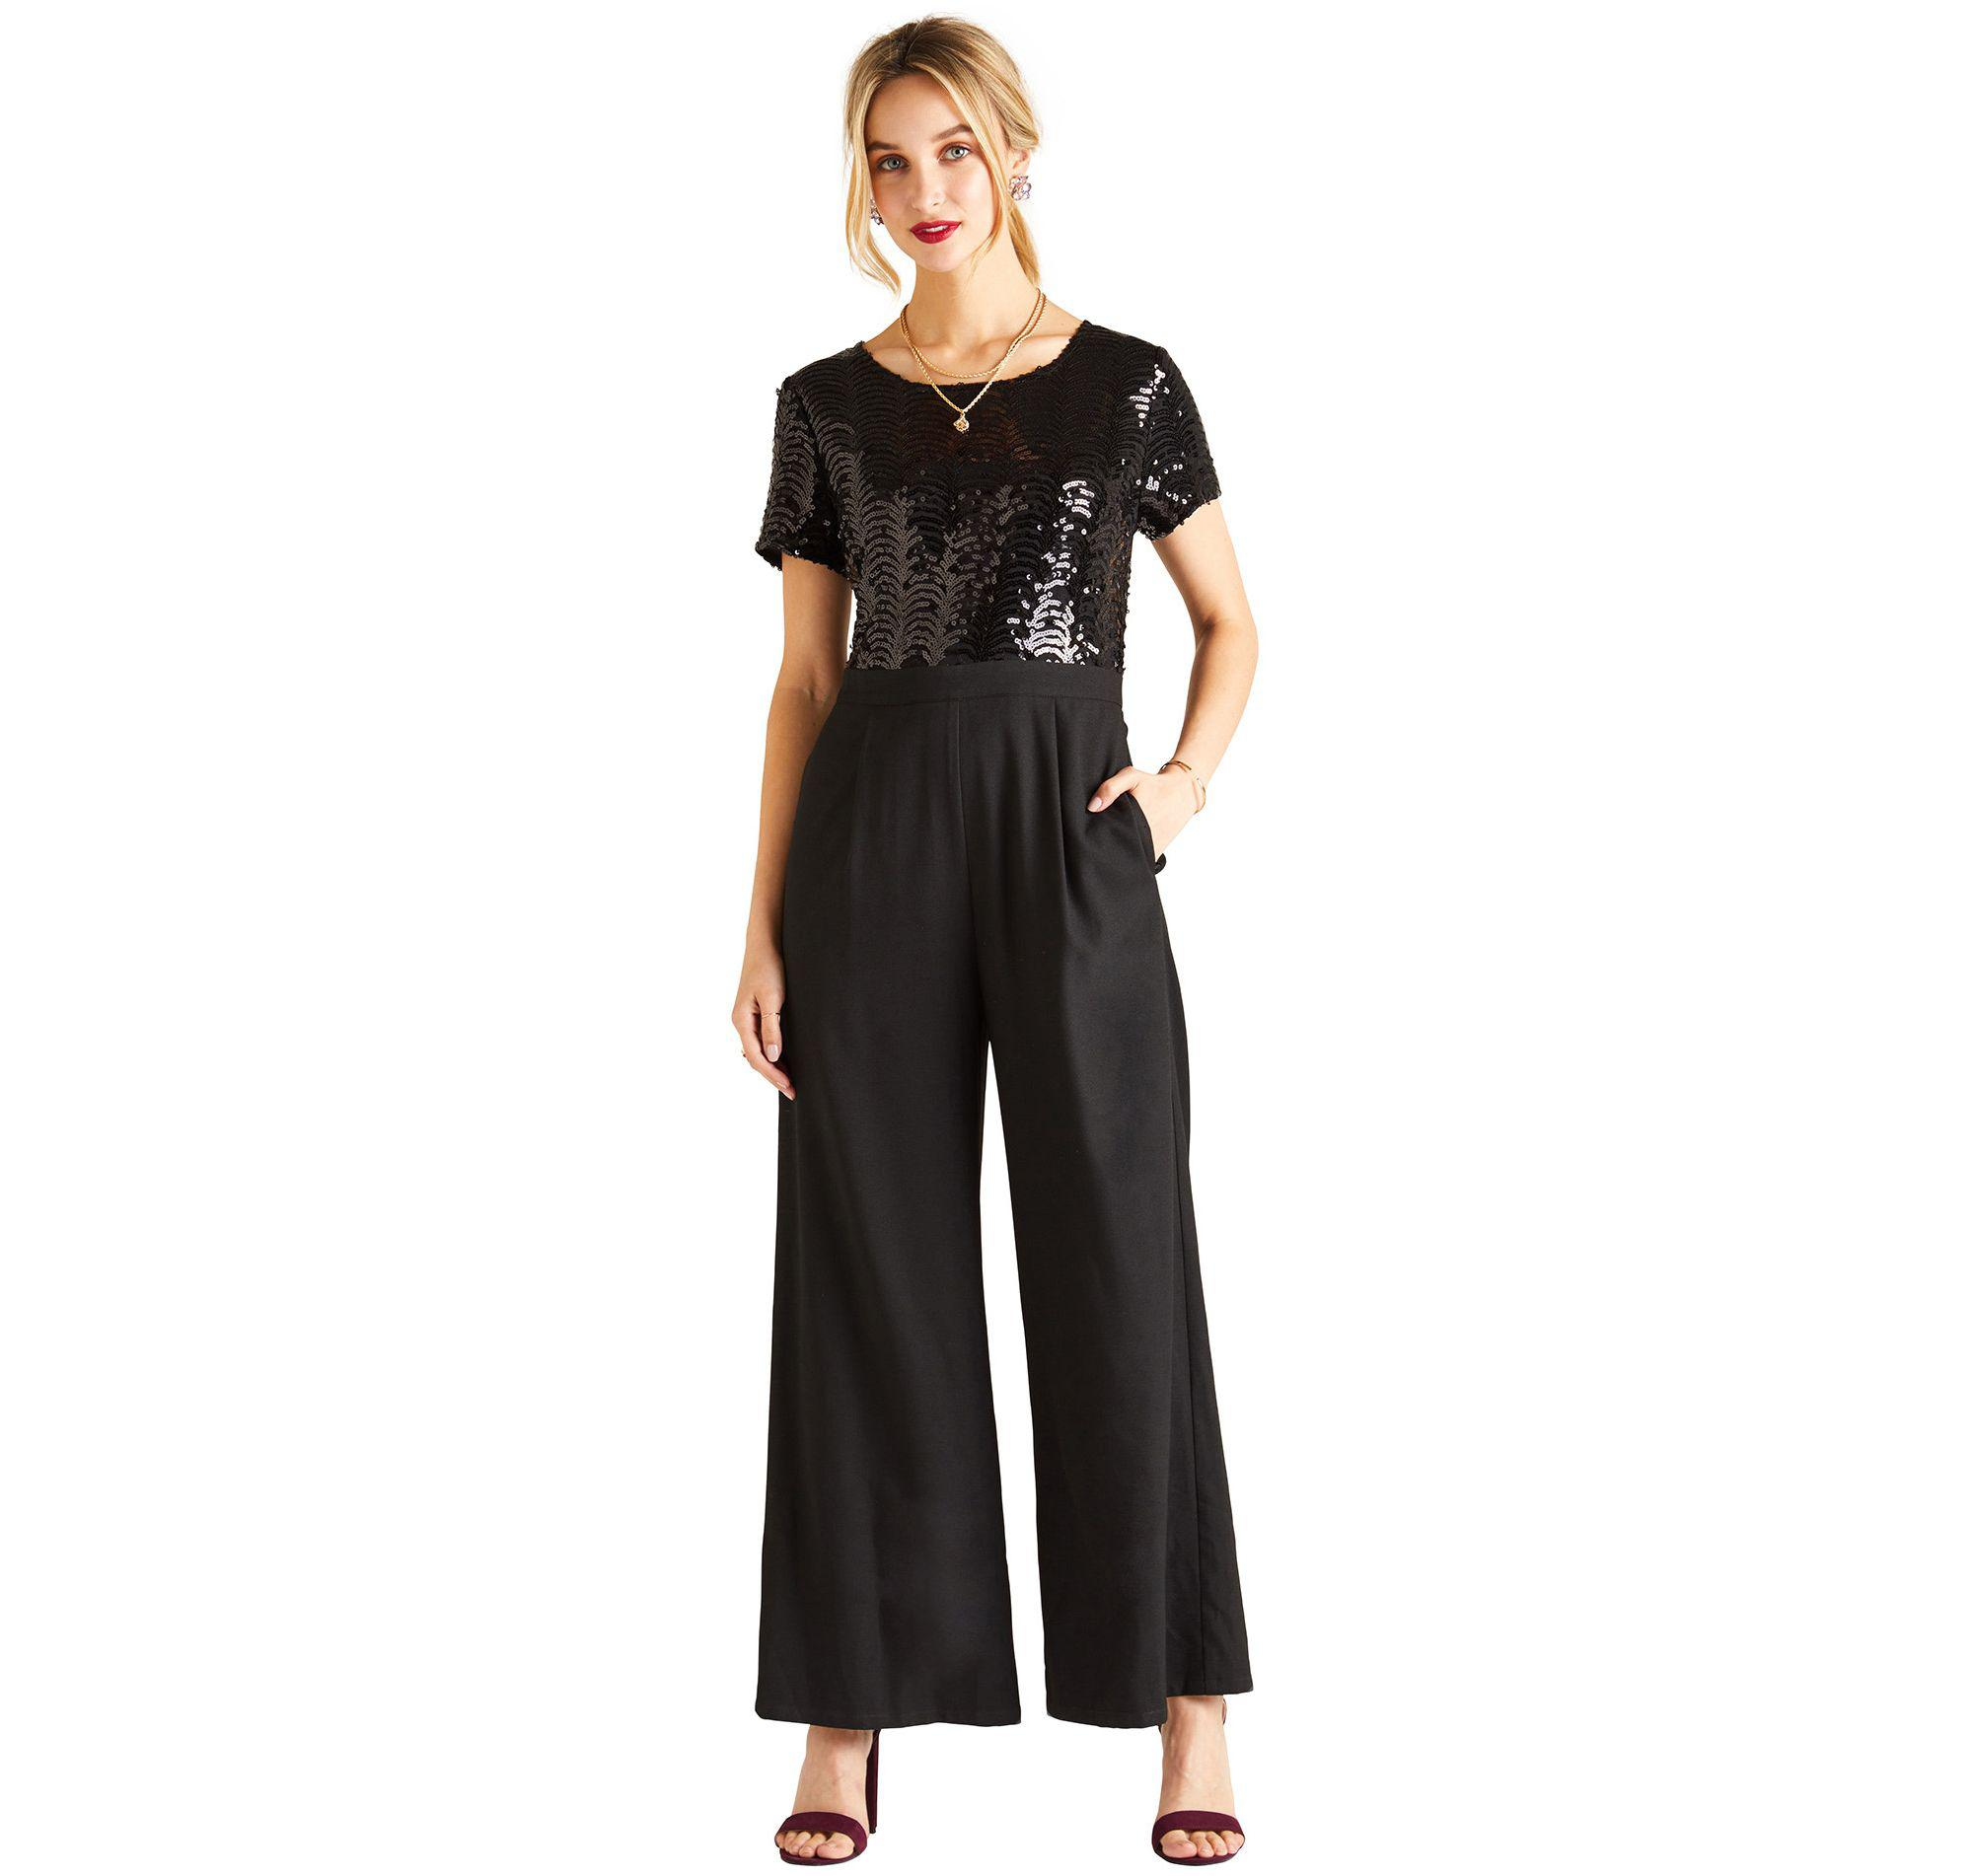 57fda99c90 Yumi  Black Sequin Embellished Jumpsuit in Black - Save 26% - Lyst